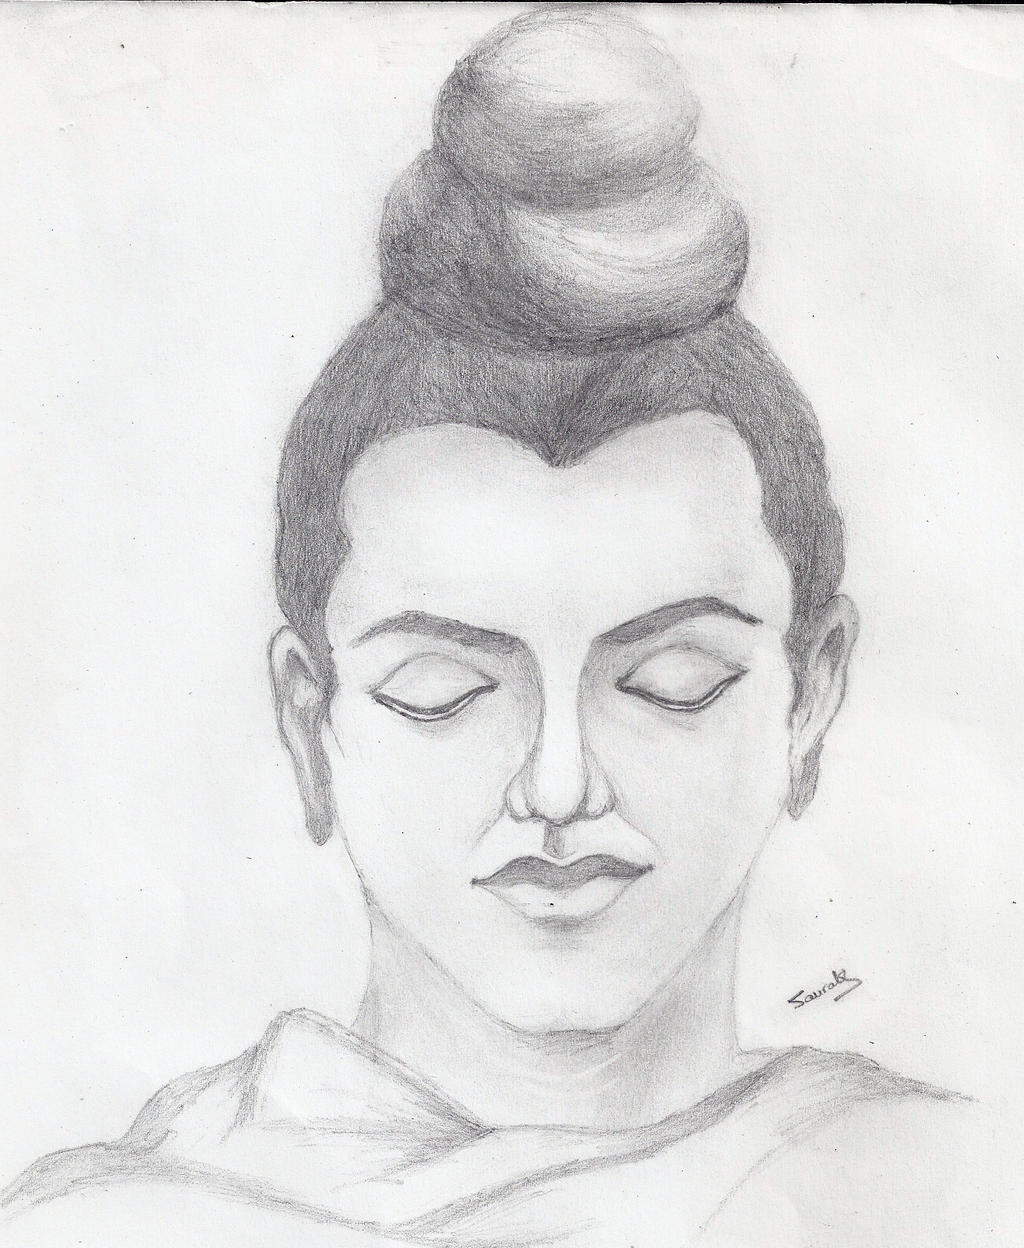 Pencil Sketches Of Gautam Buddha Pencil Sketch